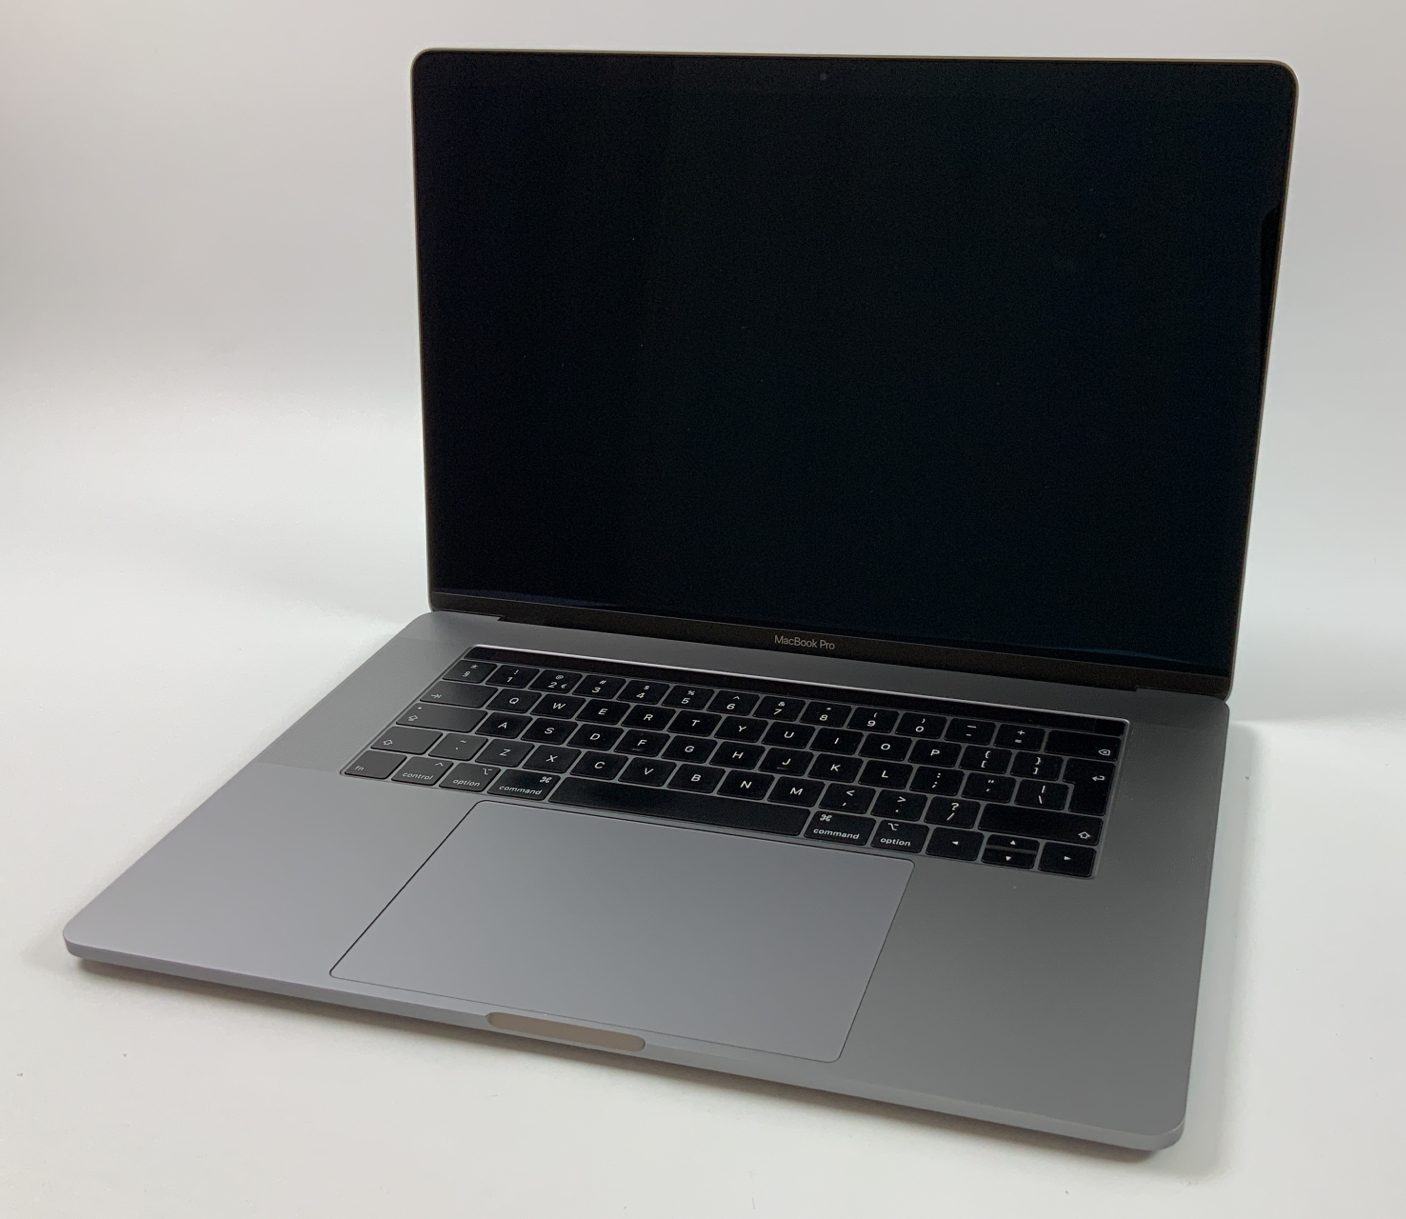 """MacBook Pro 15"""" Touch Bar Mid 2018 (Intel 6-Core i9 2.9 GHz 32 GB RAM 1 TB SSD), Space Gray, Intel 6-Core i9 2.9 GHz, 32 GB RAM, 1 TB SSD, Afbeelding 1"""